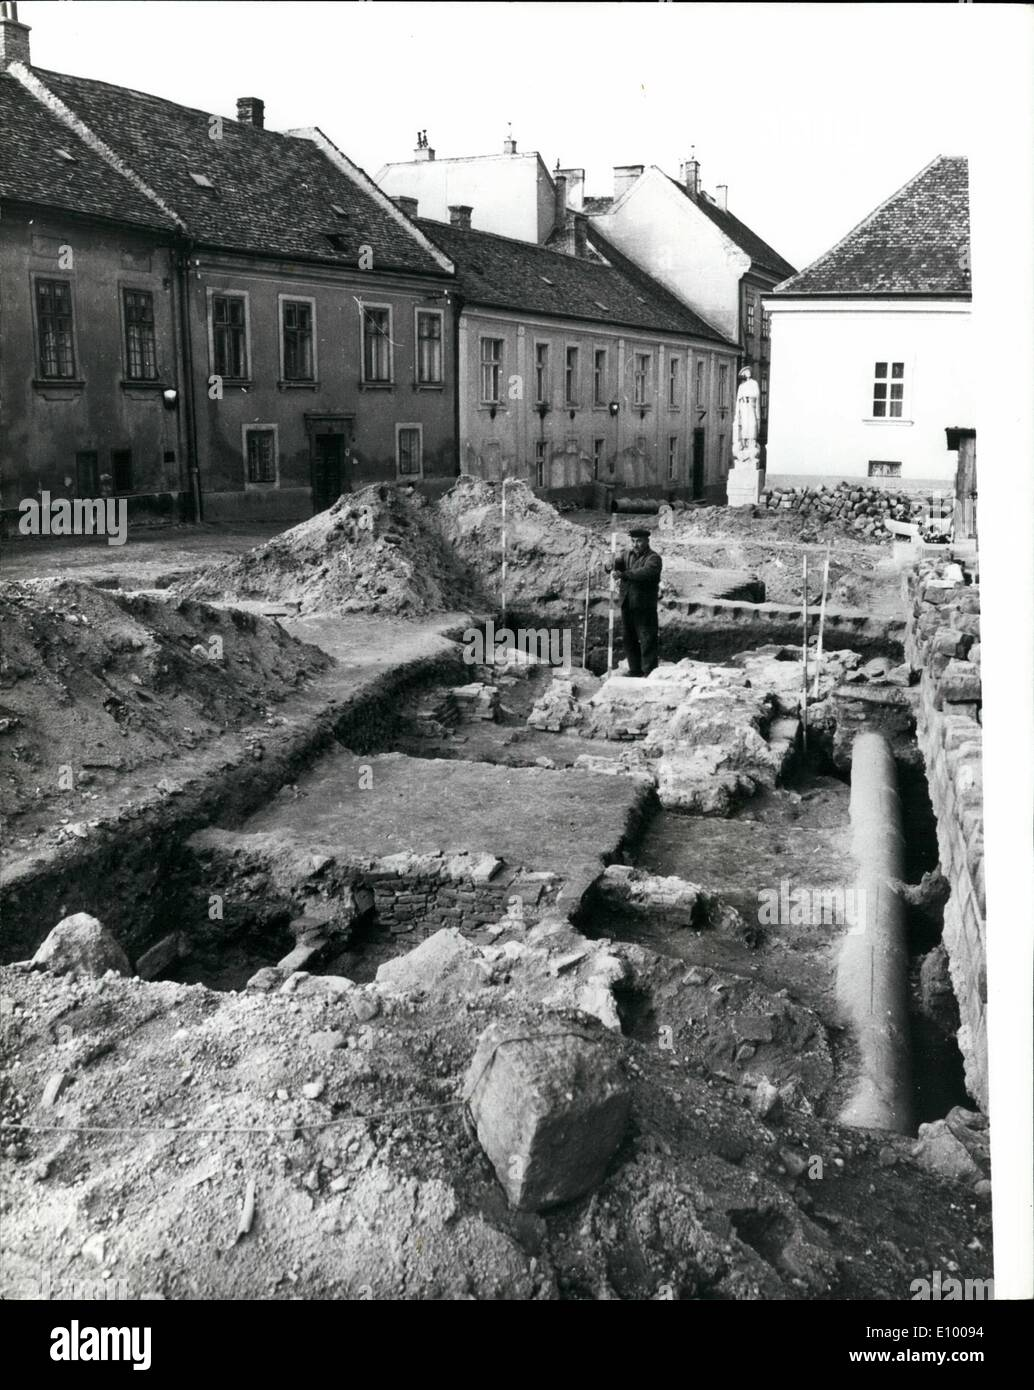 Jan. 01, 1972 - TOMB OF HUNGARIAN NATION'S FIRST RULER BELIEVED FOUND IN WESTERN HUNGARY. Archaelogists excavating Stock Photo